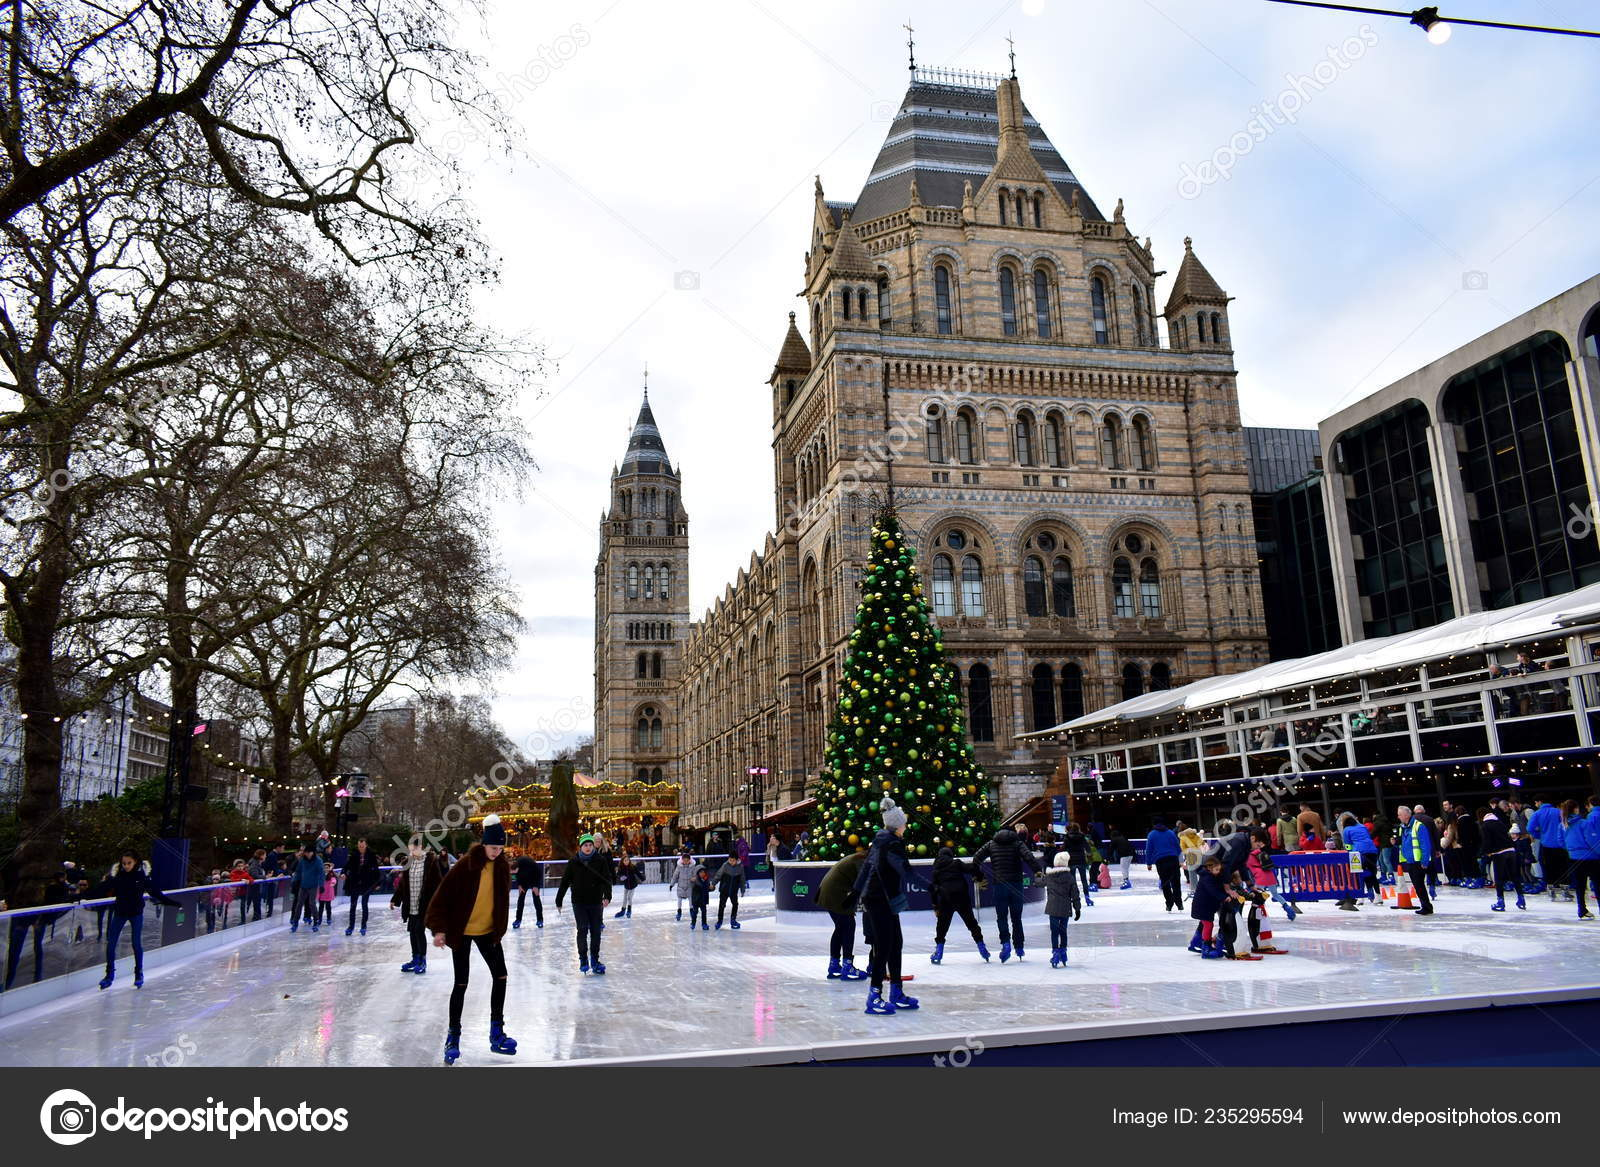 Christmas Ice Skating London.People Skating Ice Natural History Museum Christmas Ice Rink